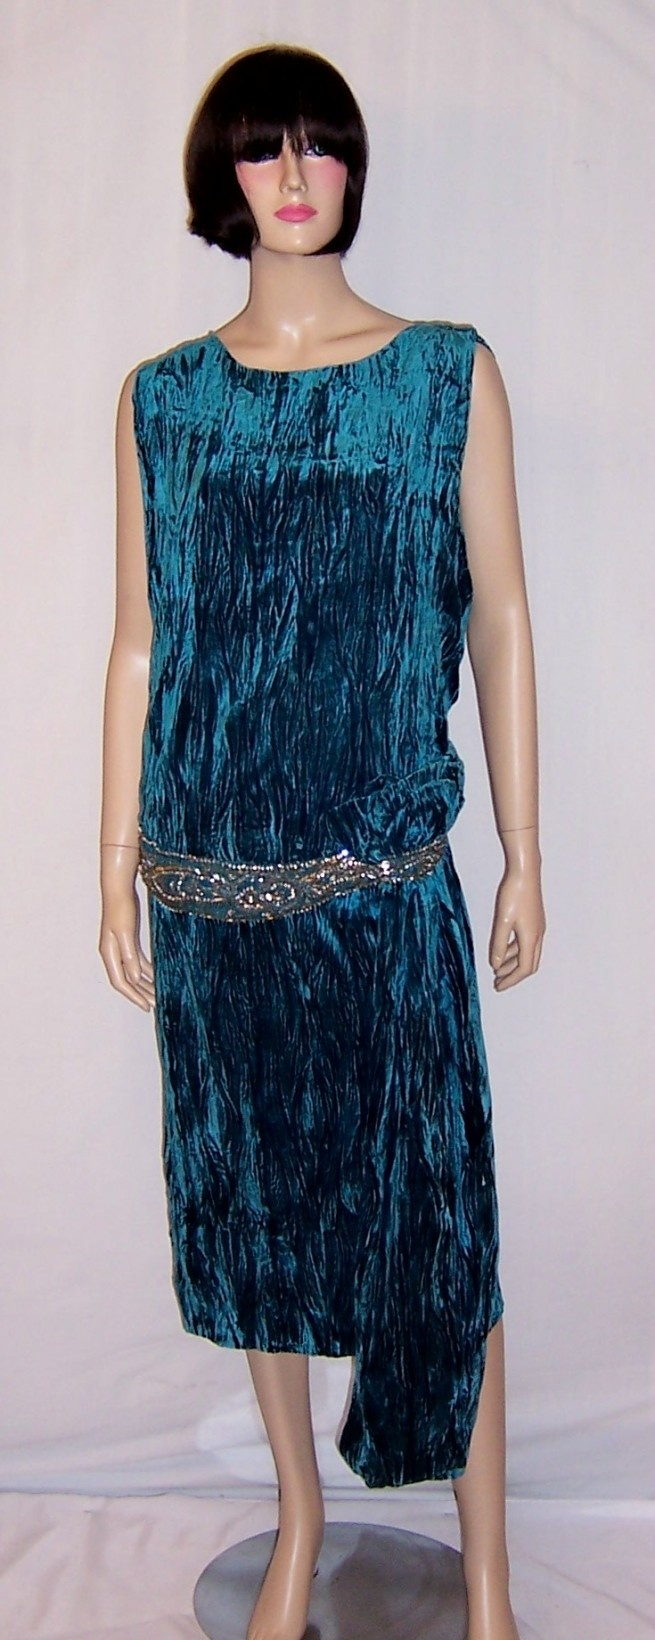 French style crushed velvet dress hat to fit